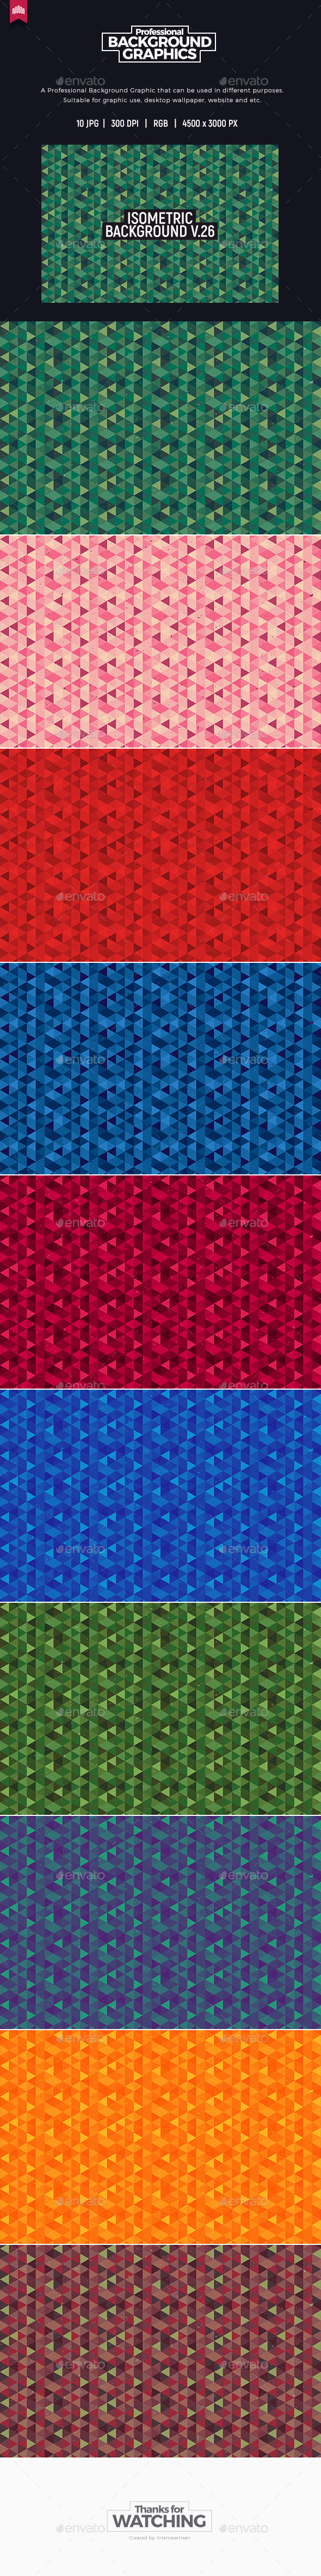 Isometric Background V.26 - Patterns Backgrounds